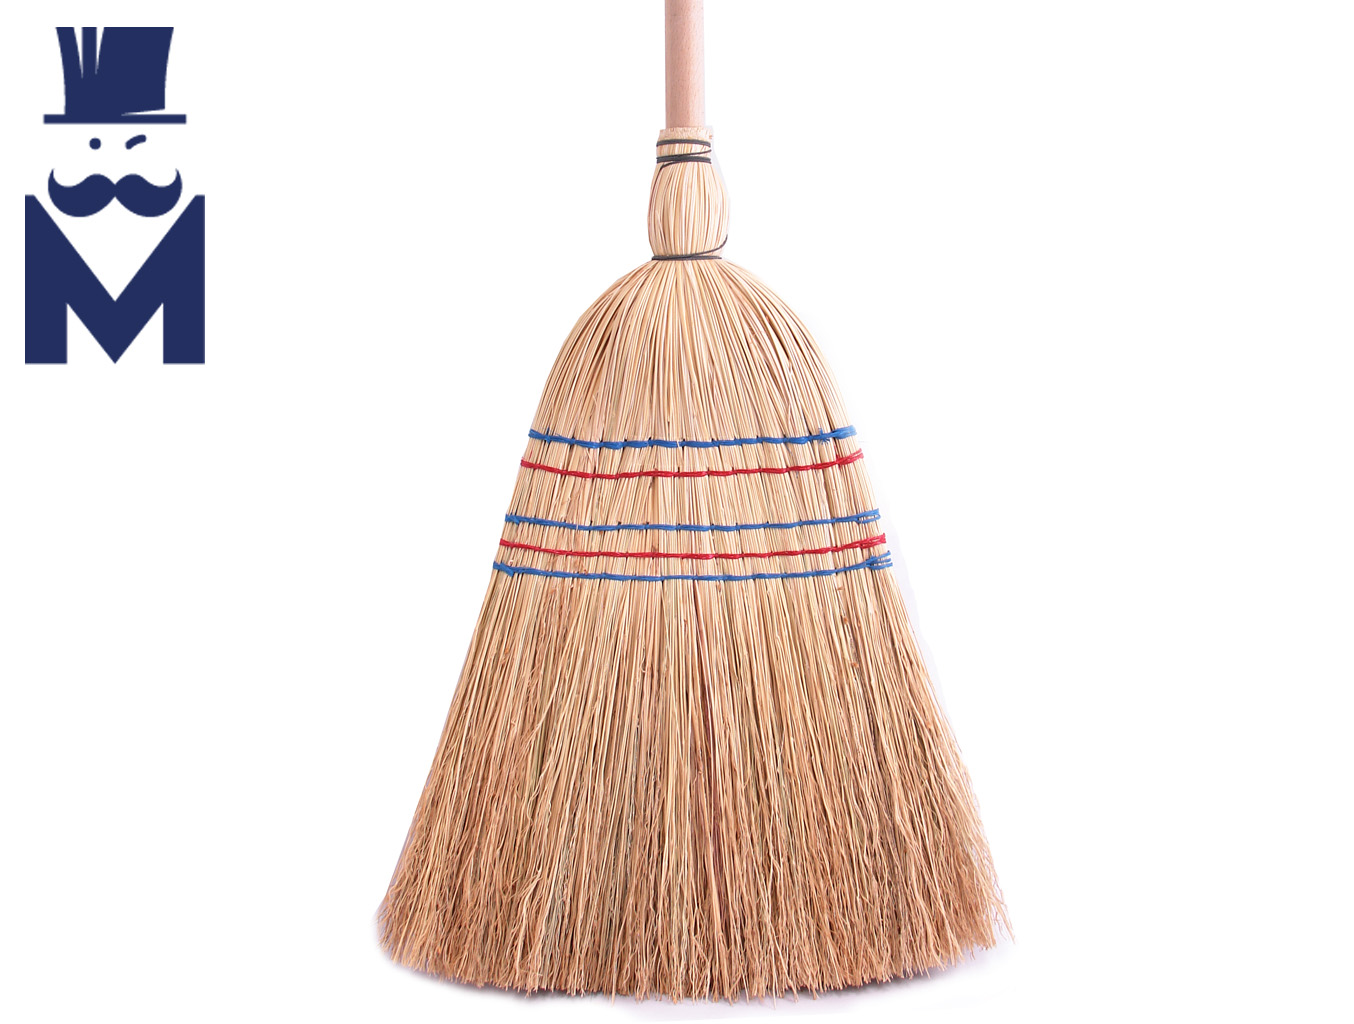 /en/products/catalog/category/31-brooms.html